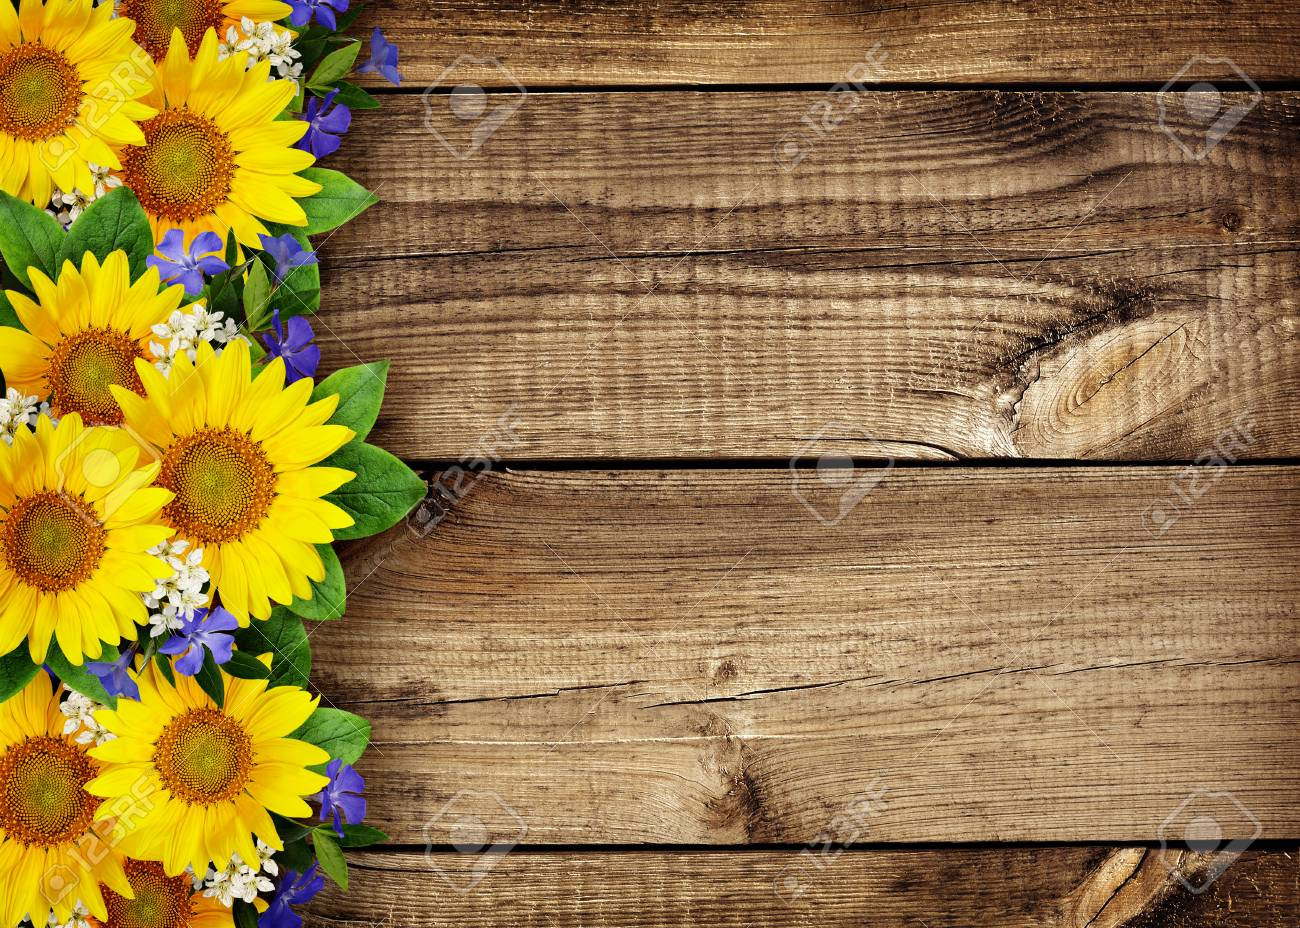 Sunflowers And Wild Flowers Border On Wooden Background Stock Photo